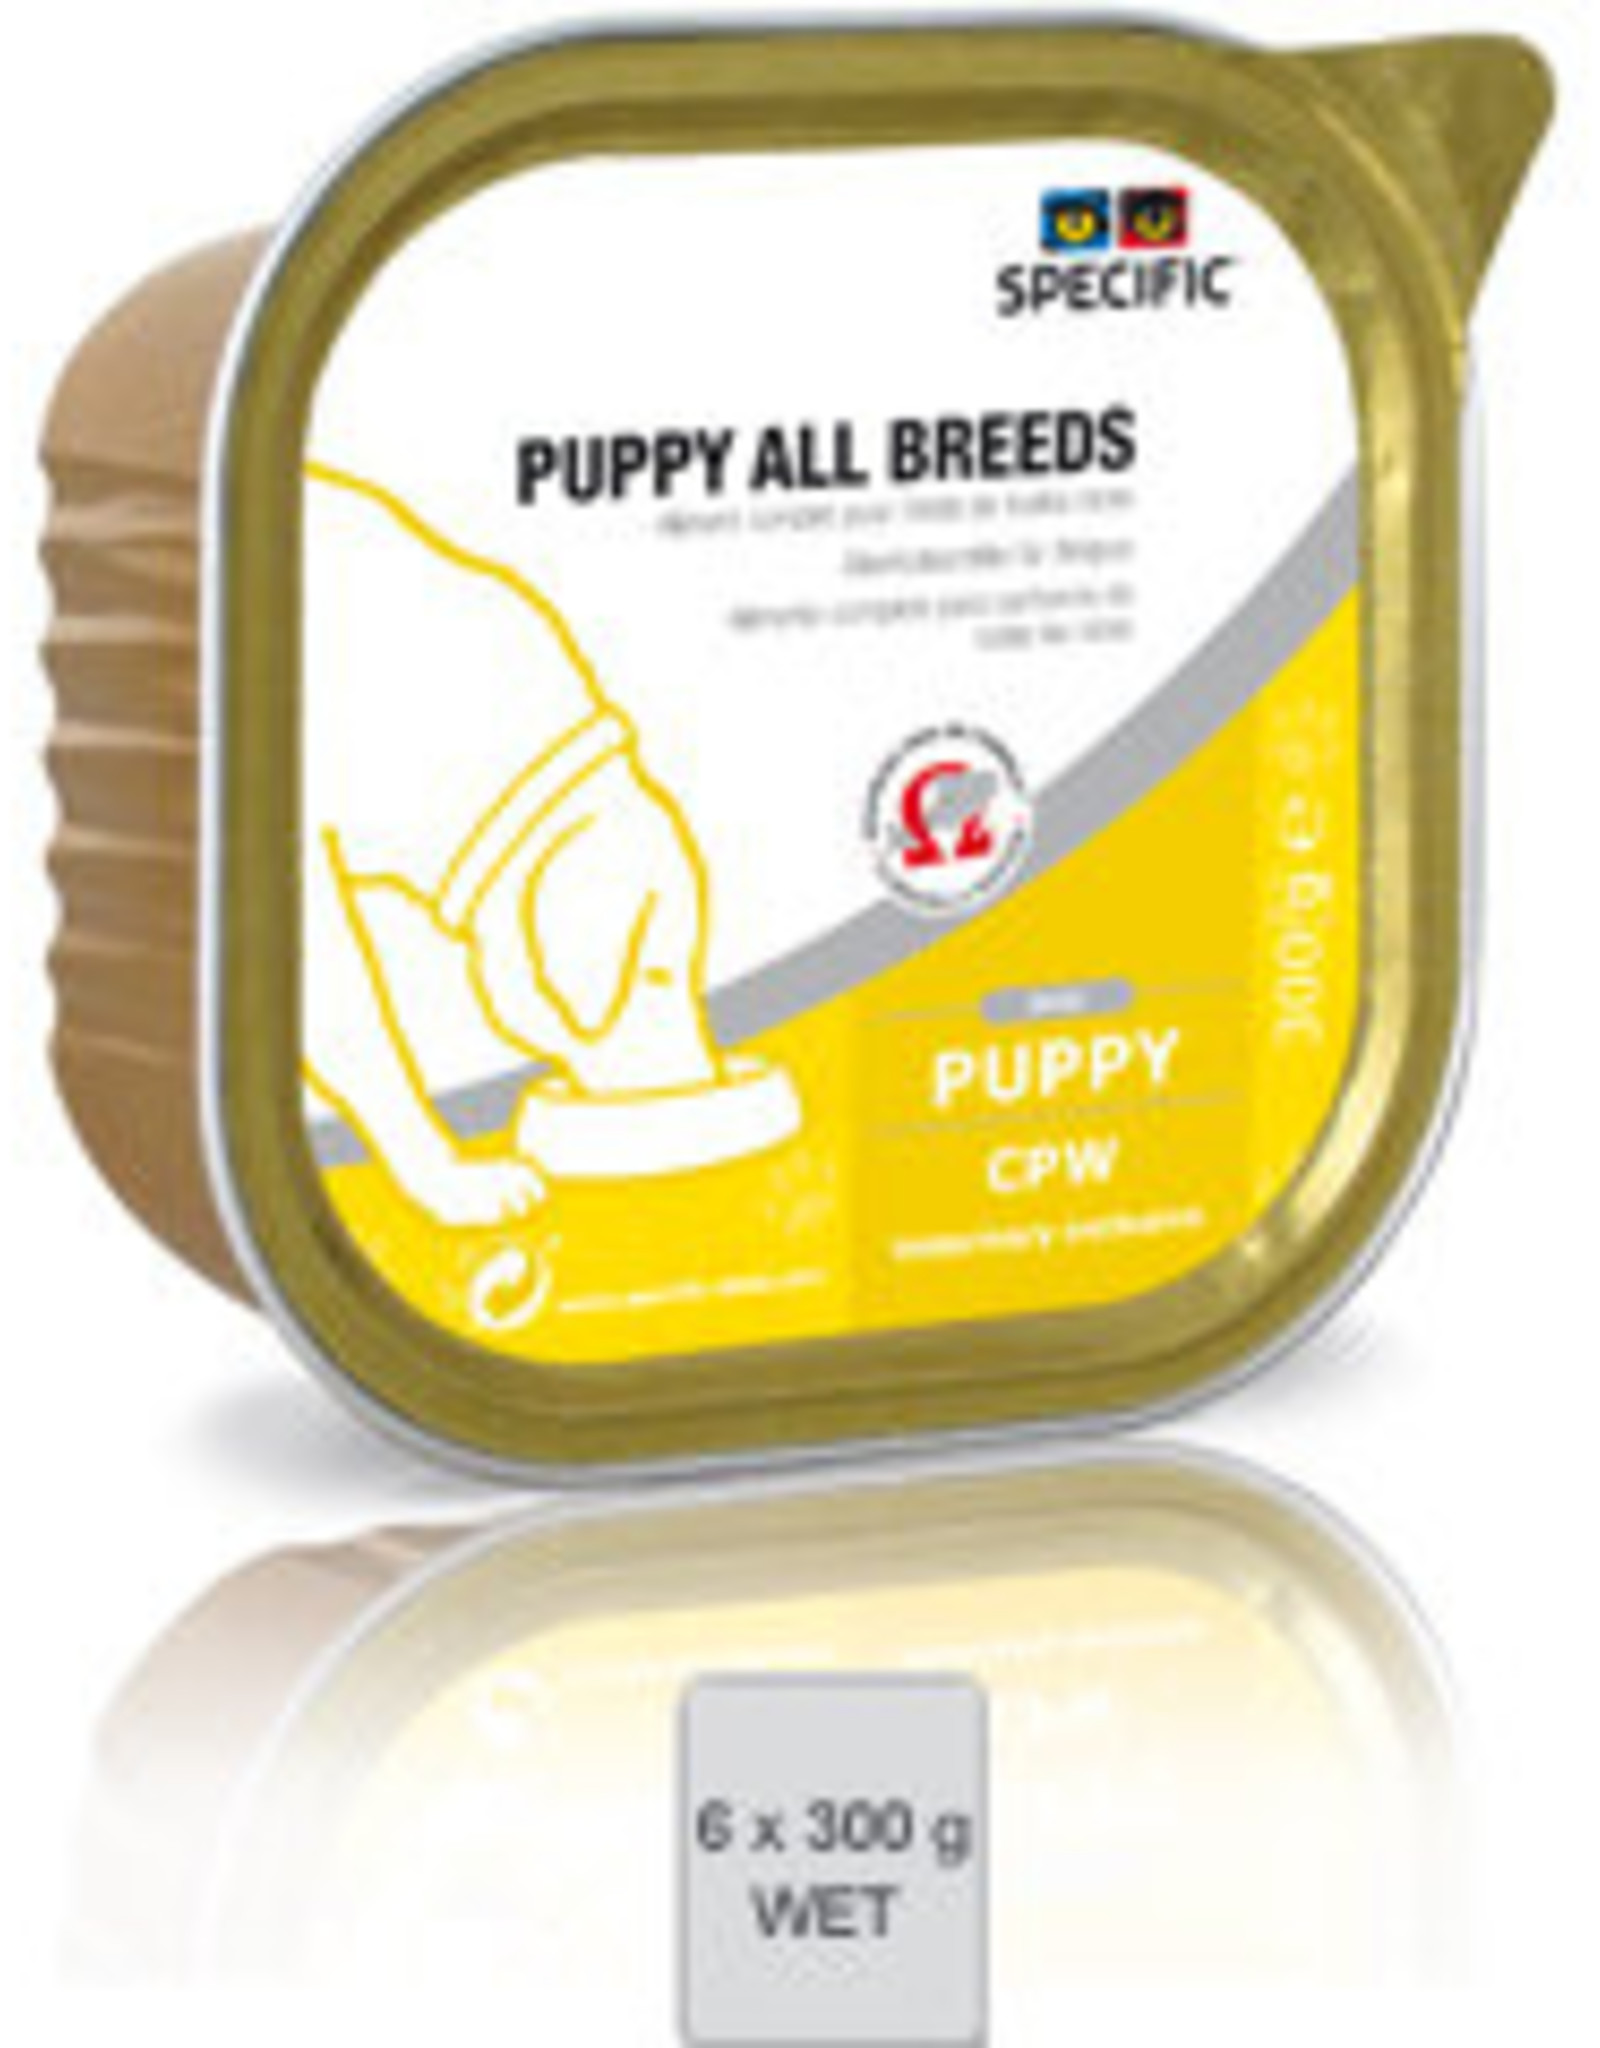 Specific Specific Cpw Puppy All Breeds 6x300gr